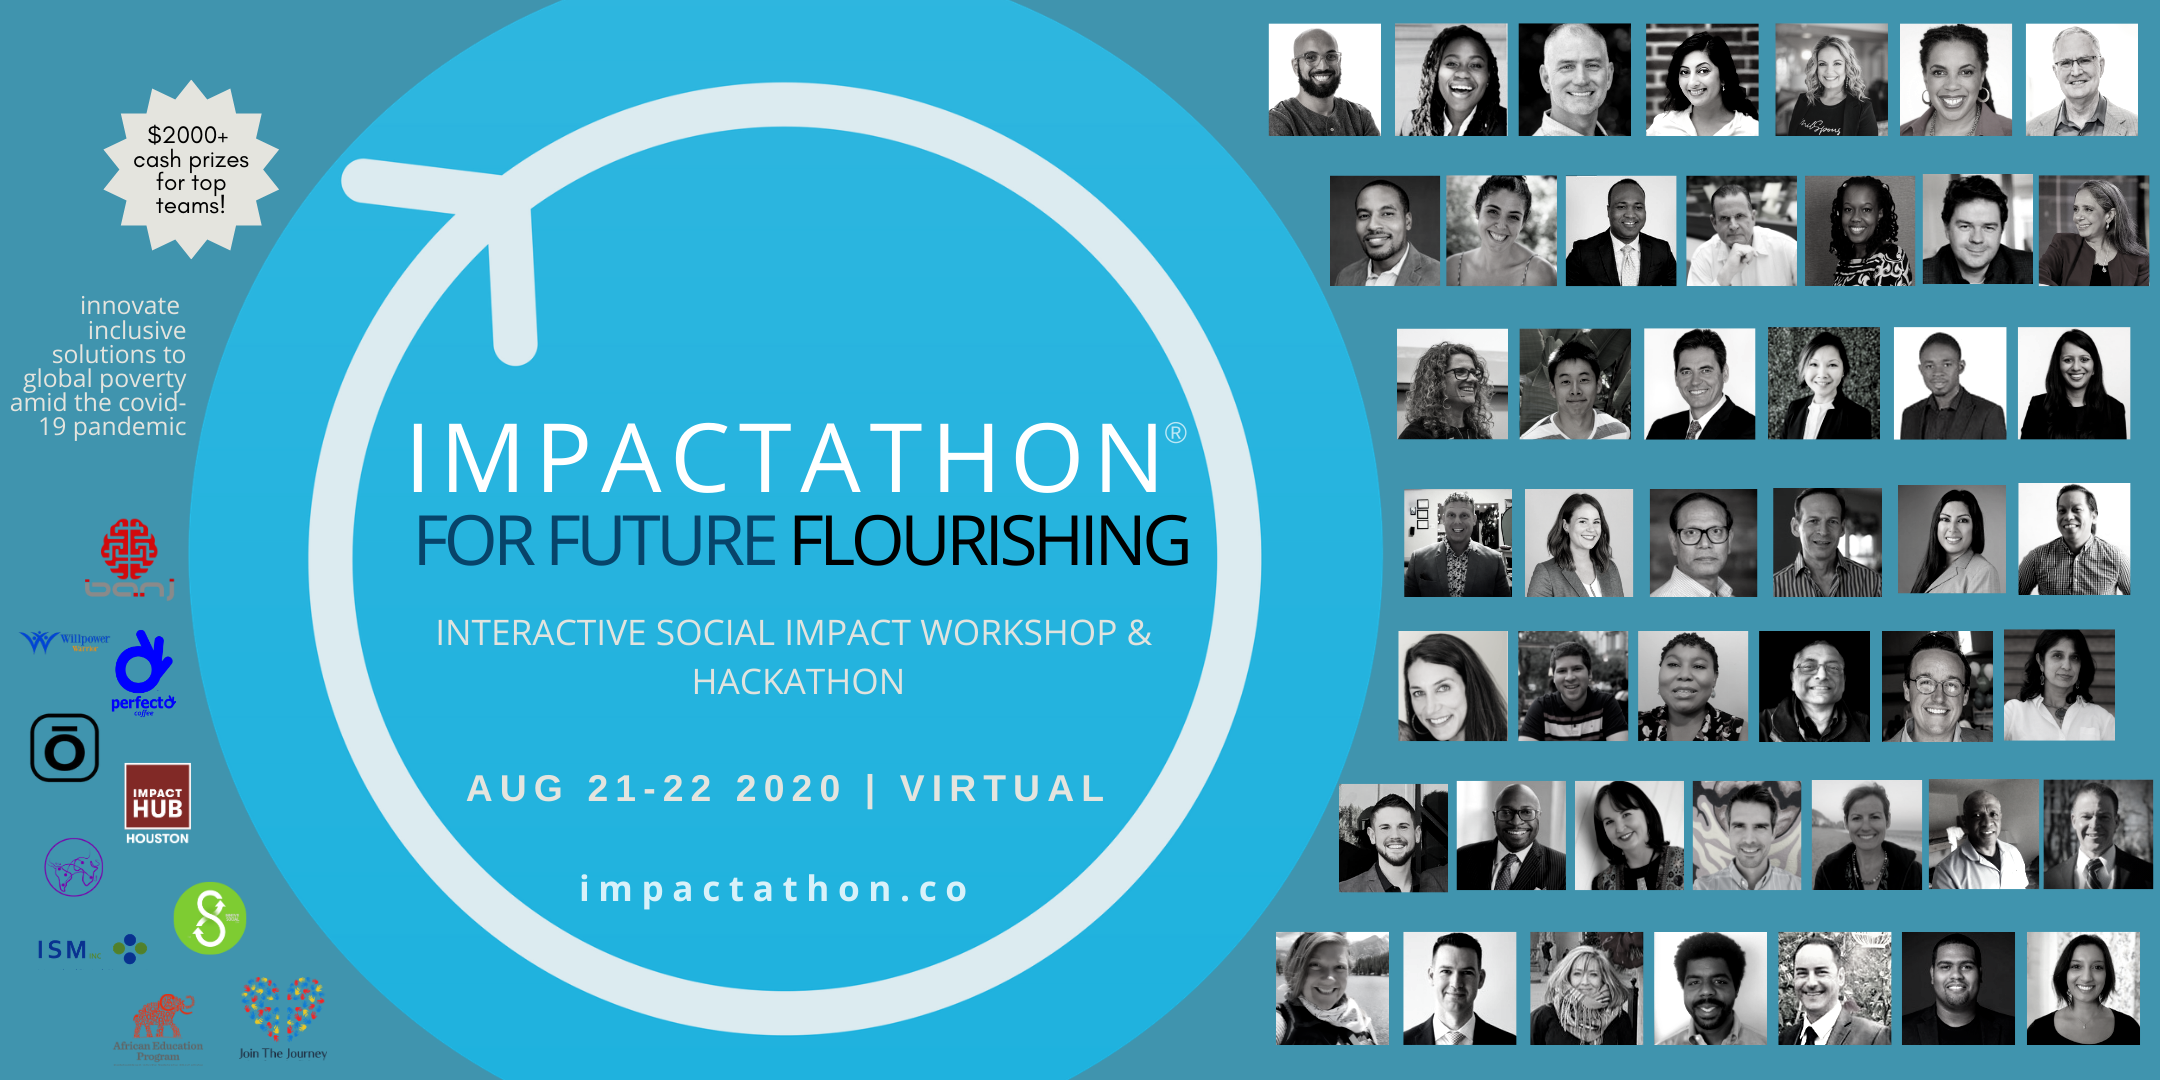 Impactathon event image with Impactathon logo and black and white photos of Impact Catalysts